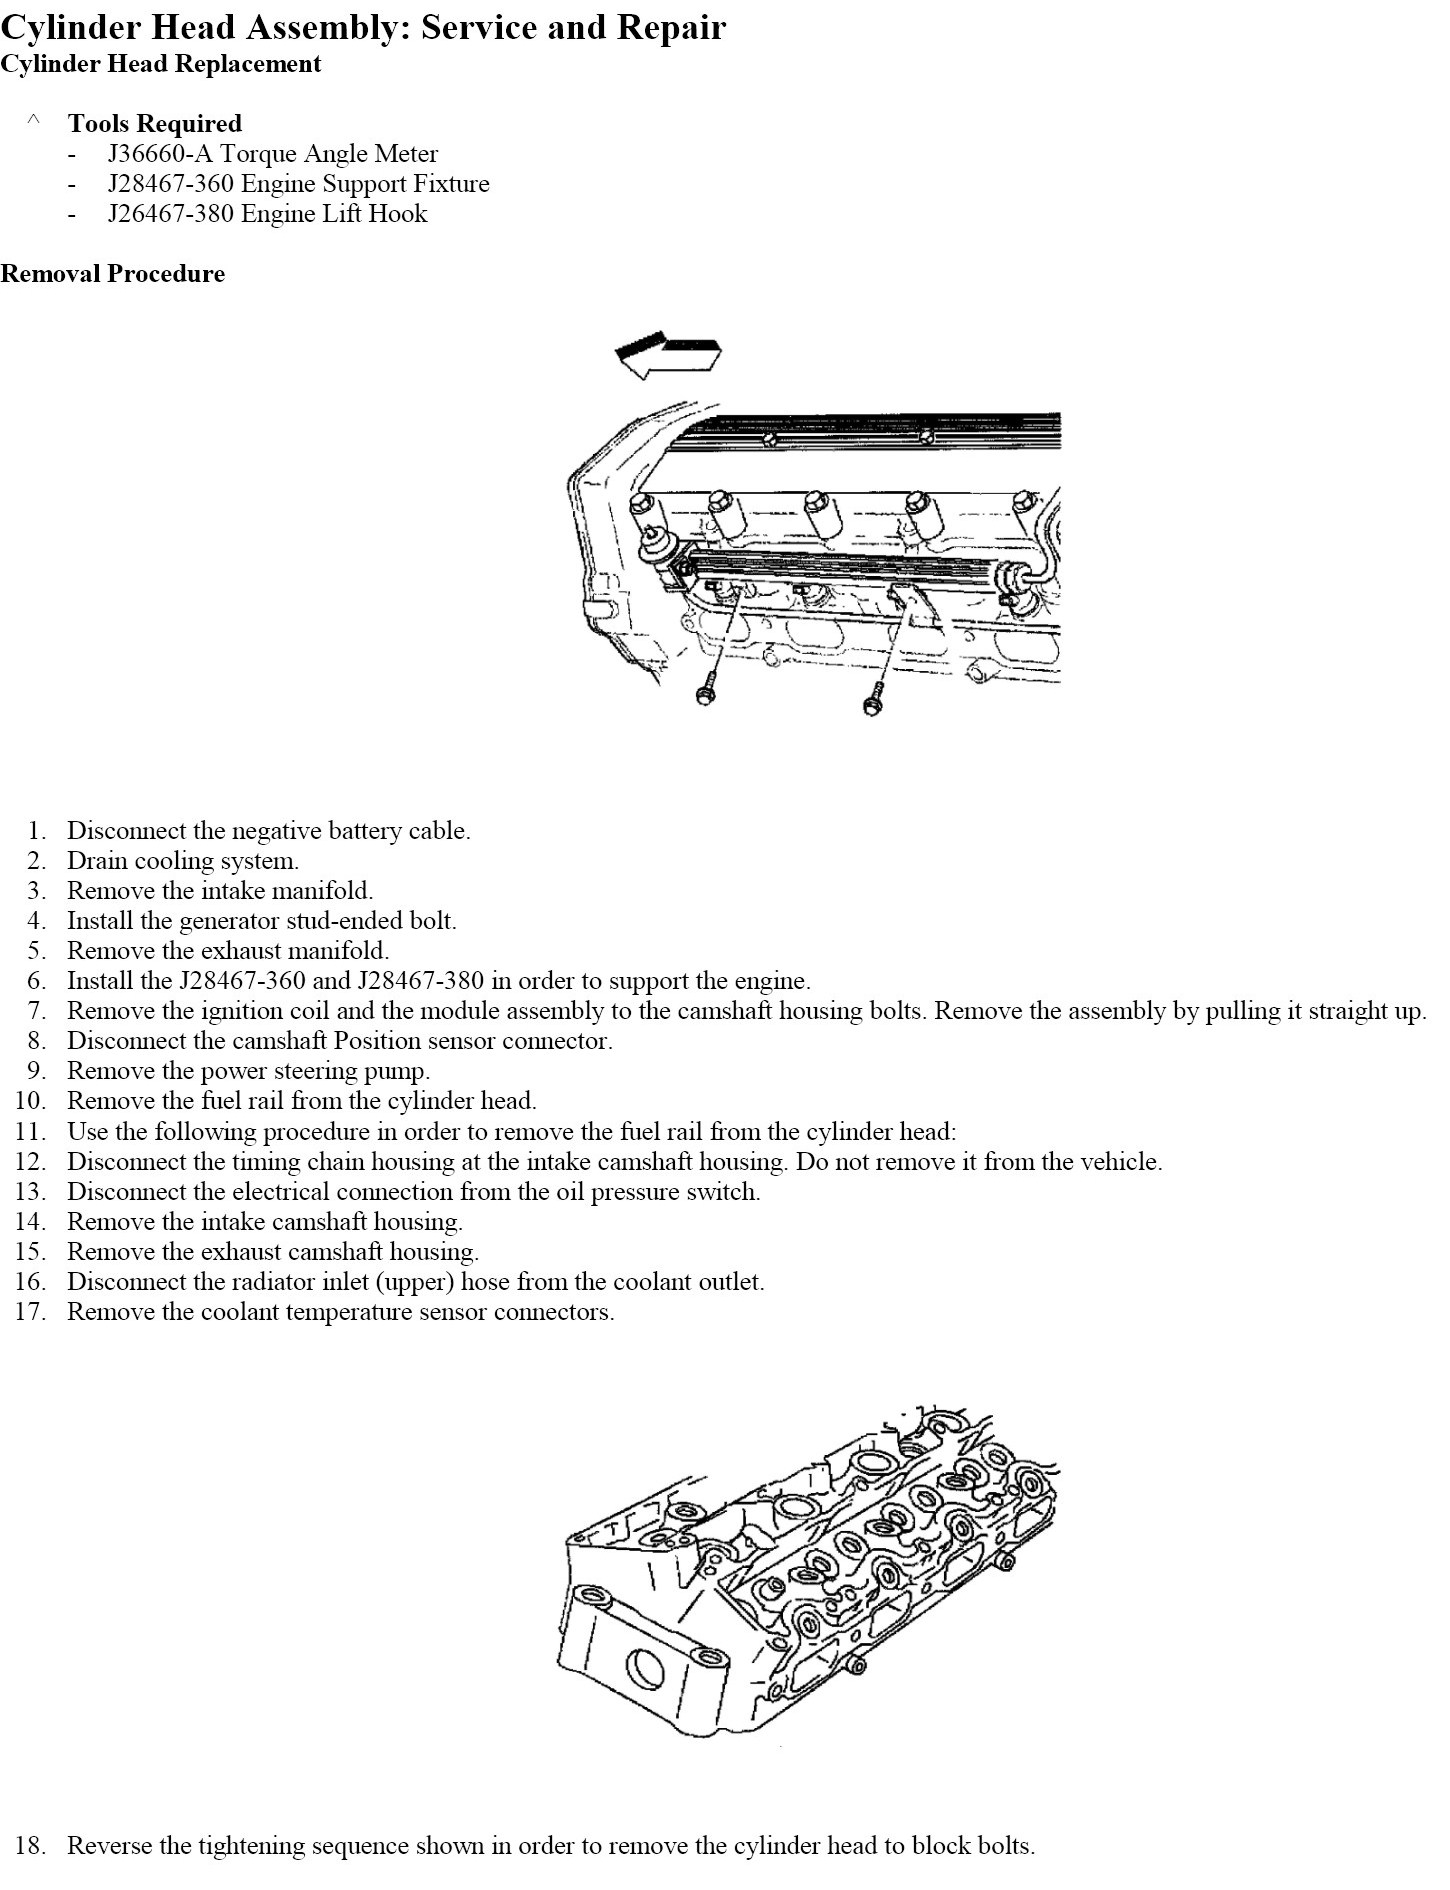 How To Change Head Gasket In 2001 Chevy Cavalier Z24 With